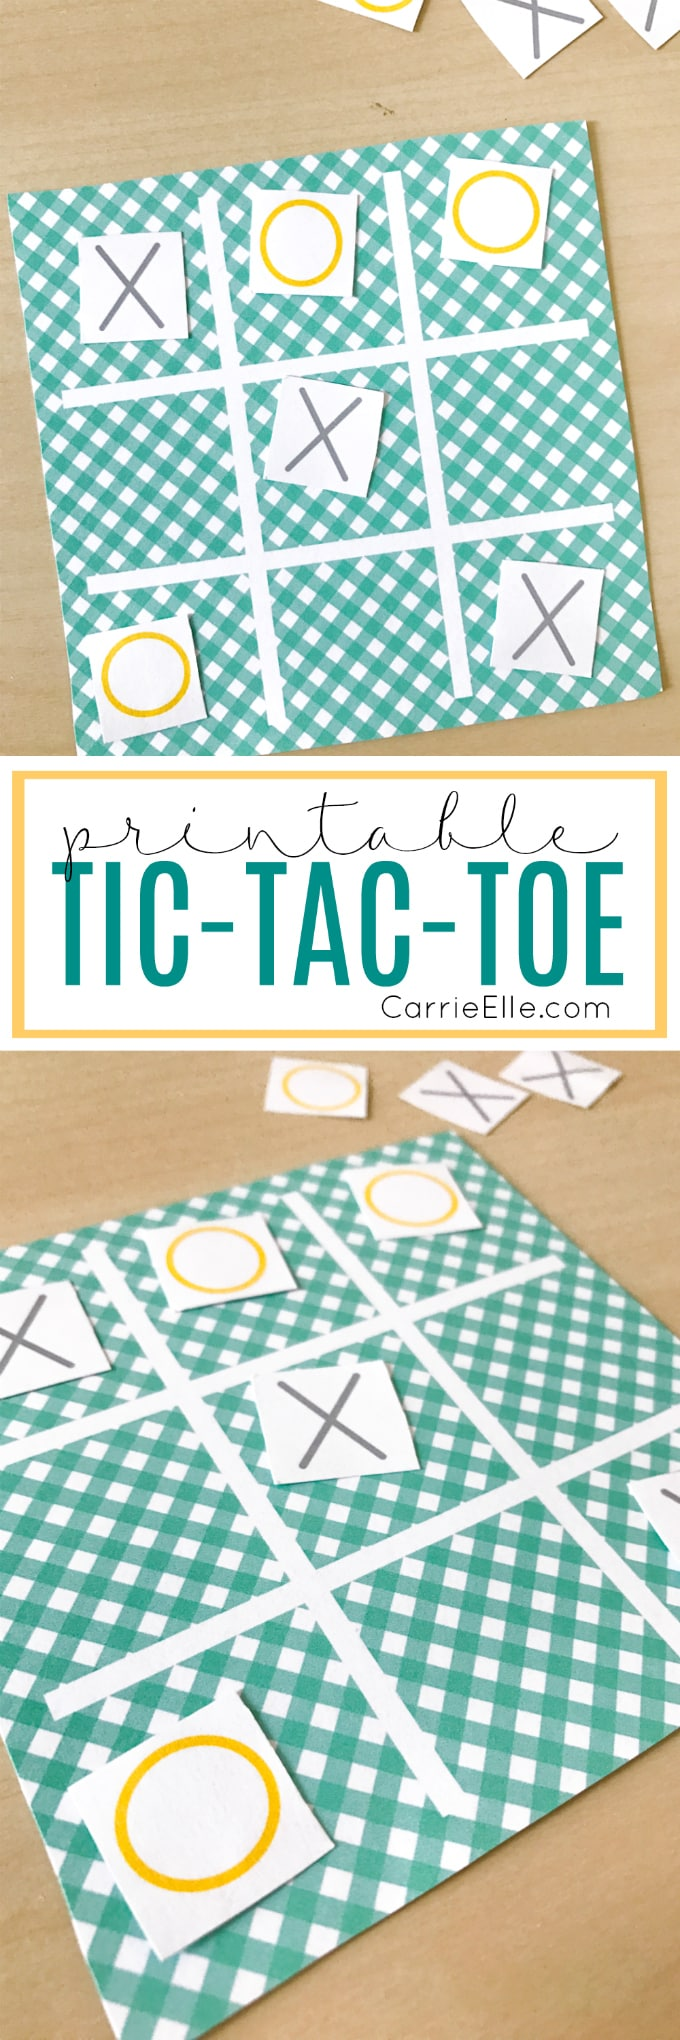 Printable Tic-Tac-Toe